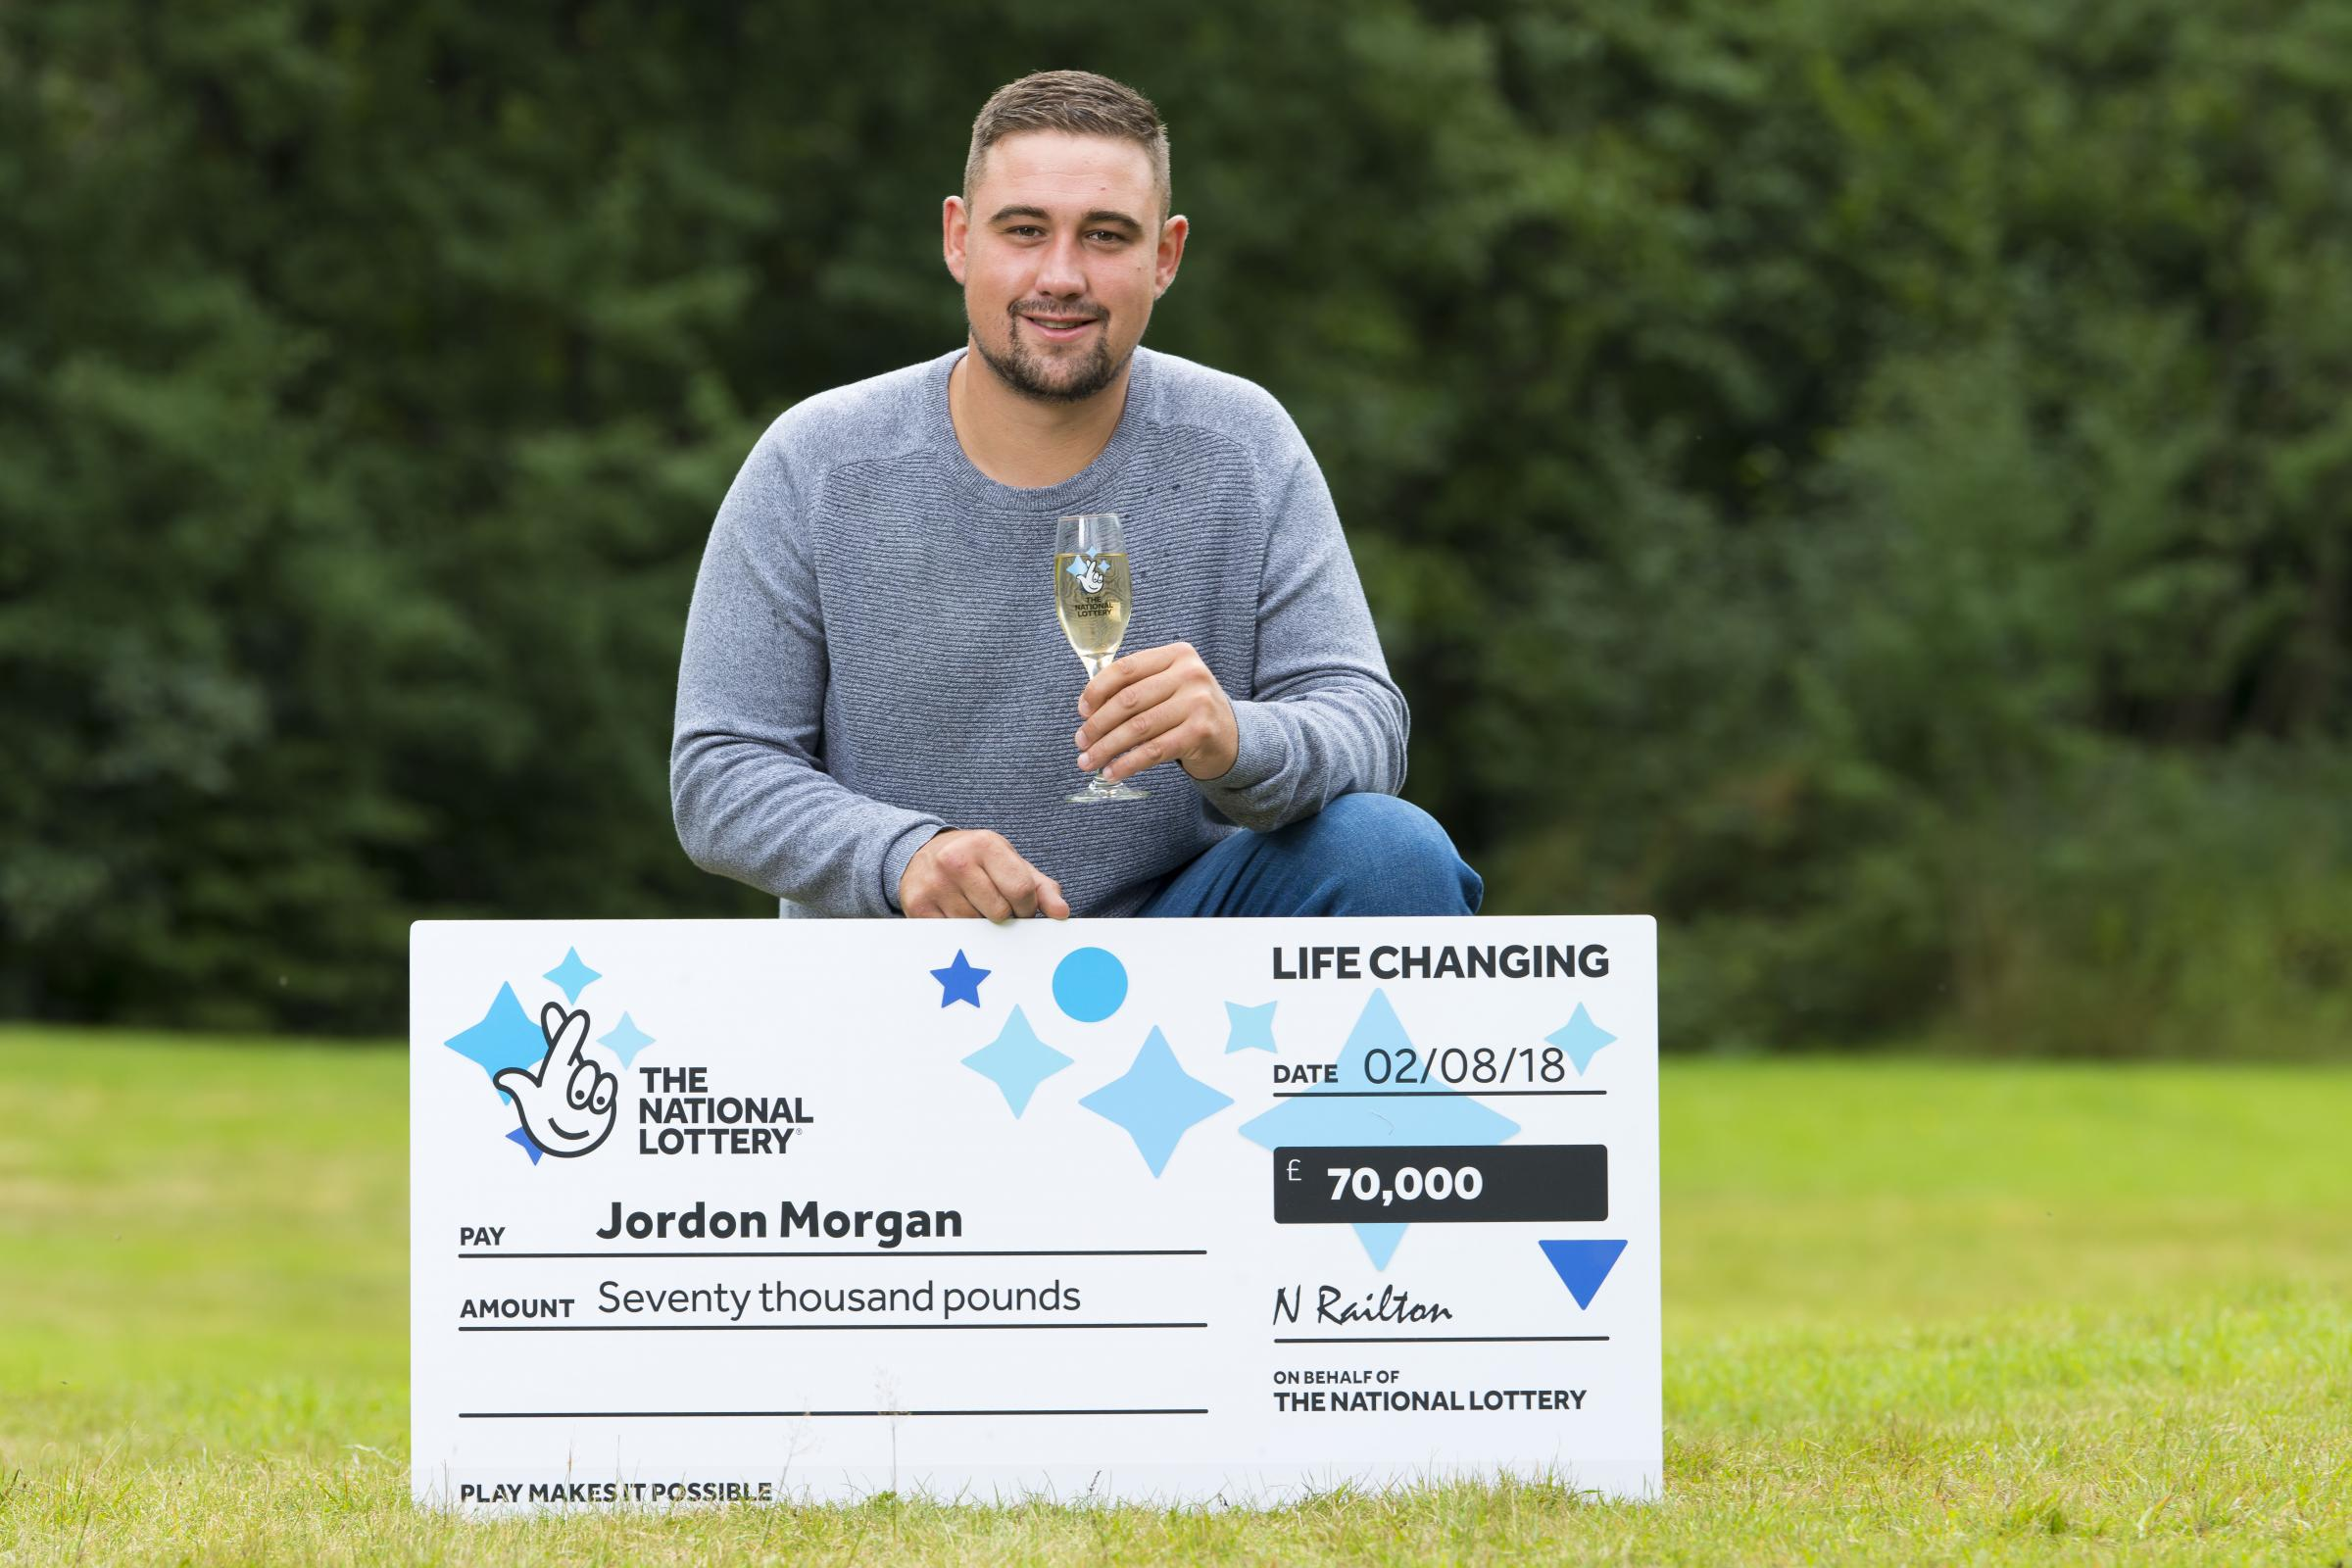 Jordon Morgan, 27, won £70,000 on a National Lottery Scratchcard. Picture: Camelot